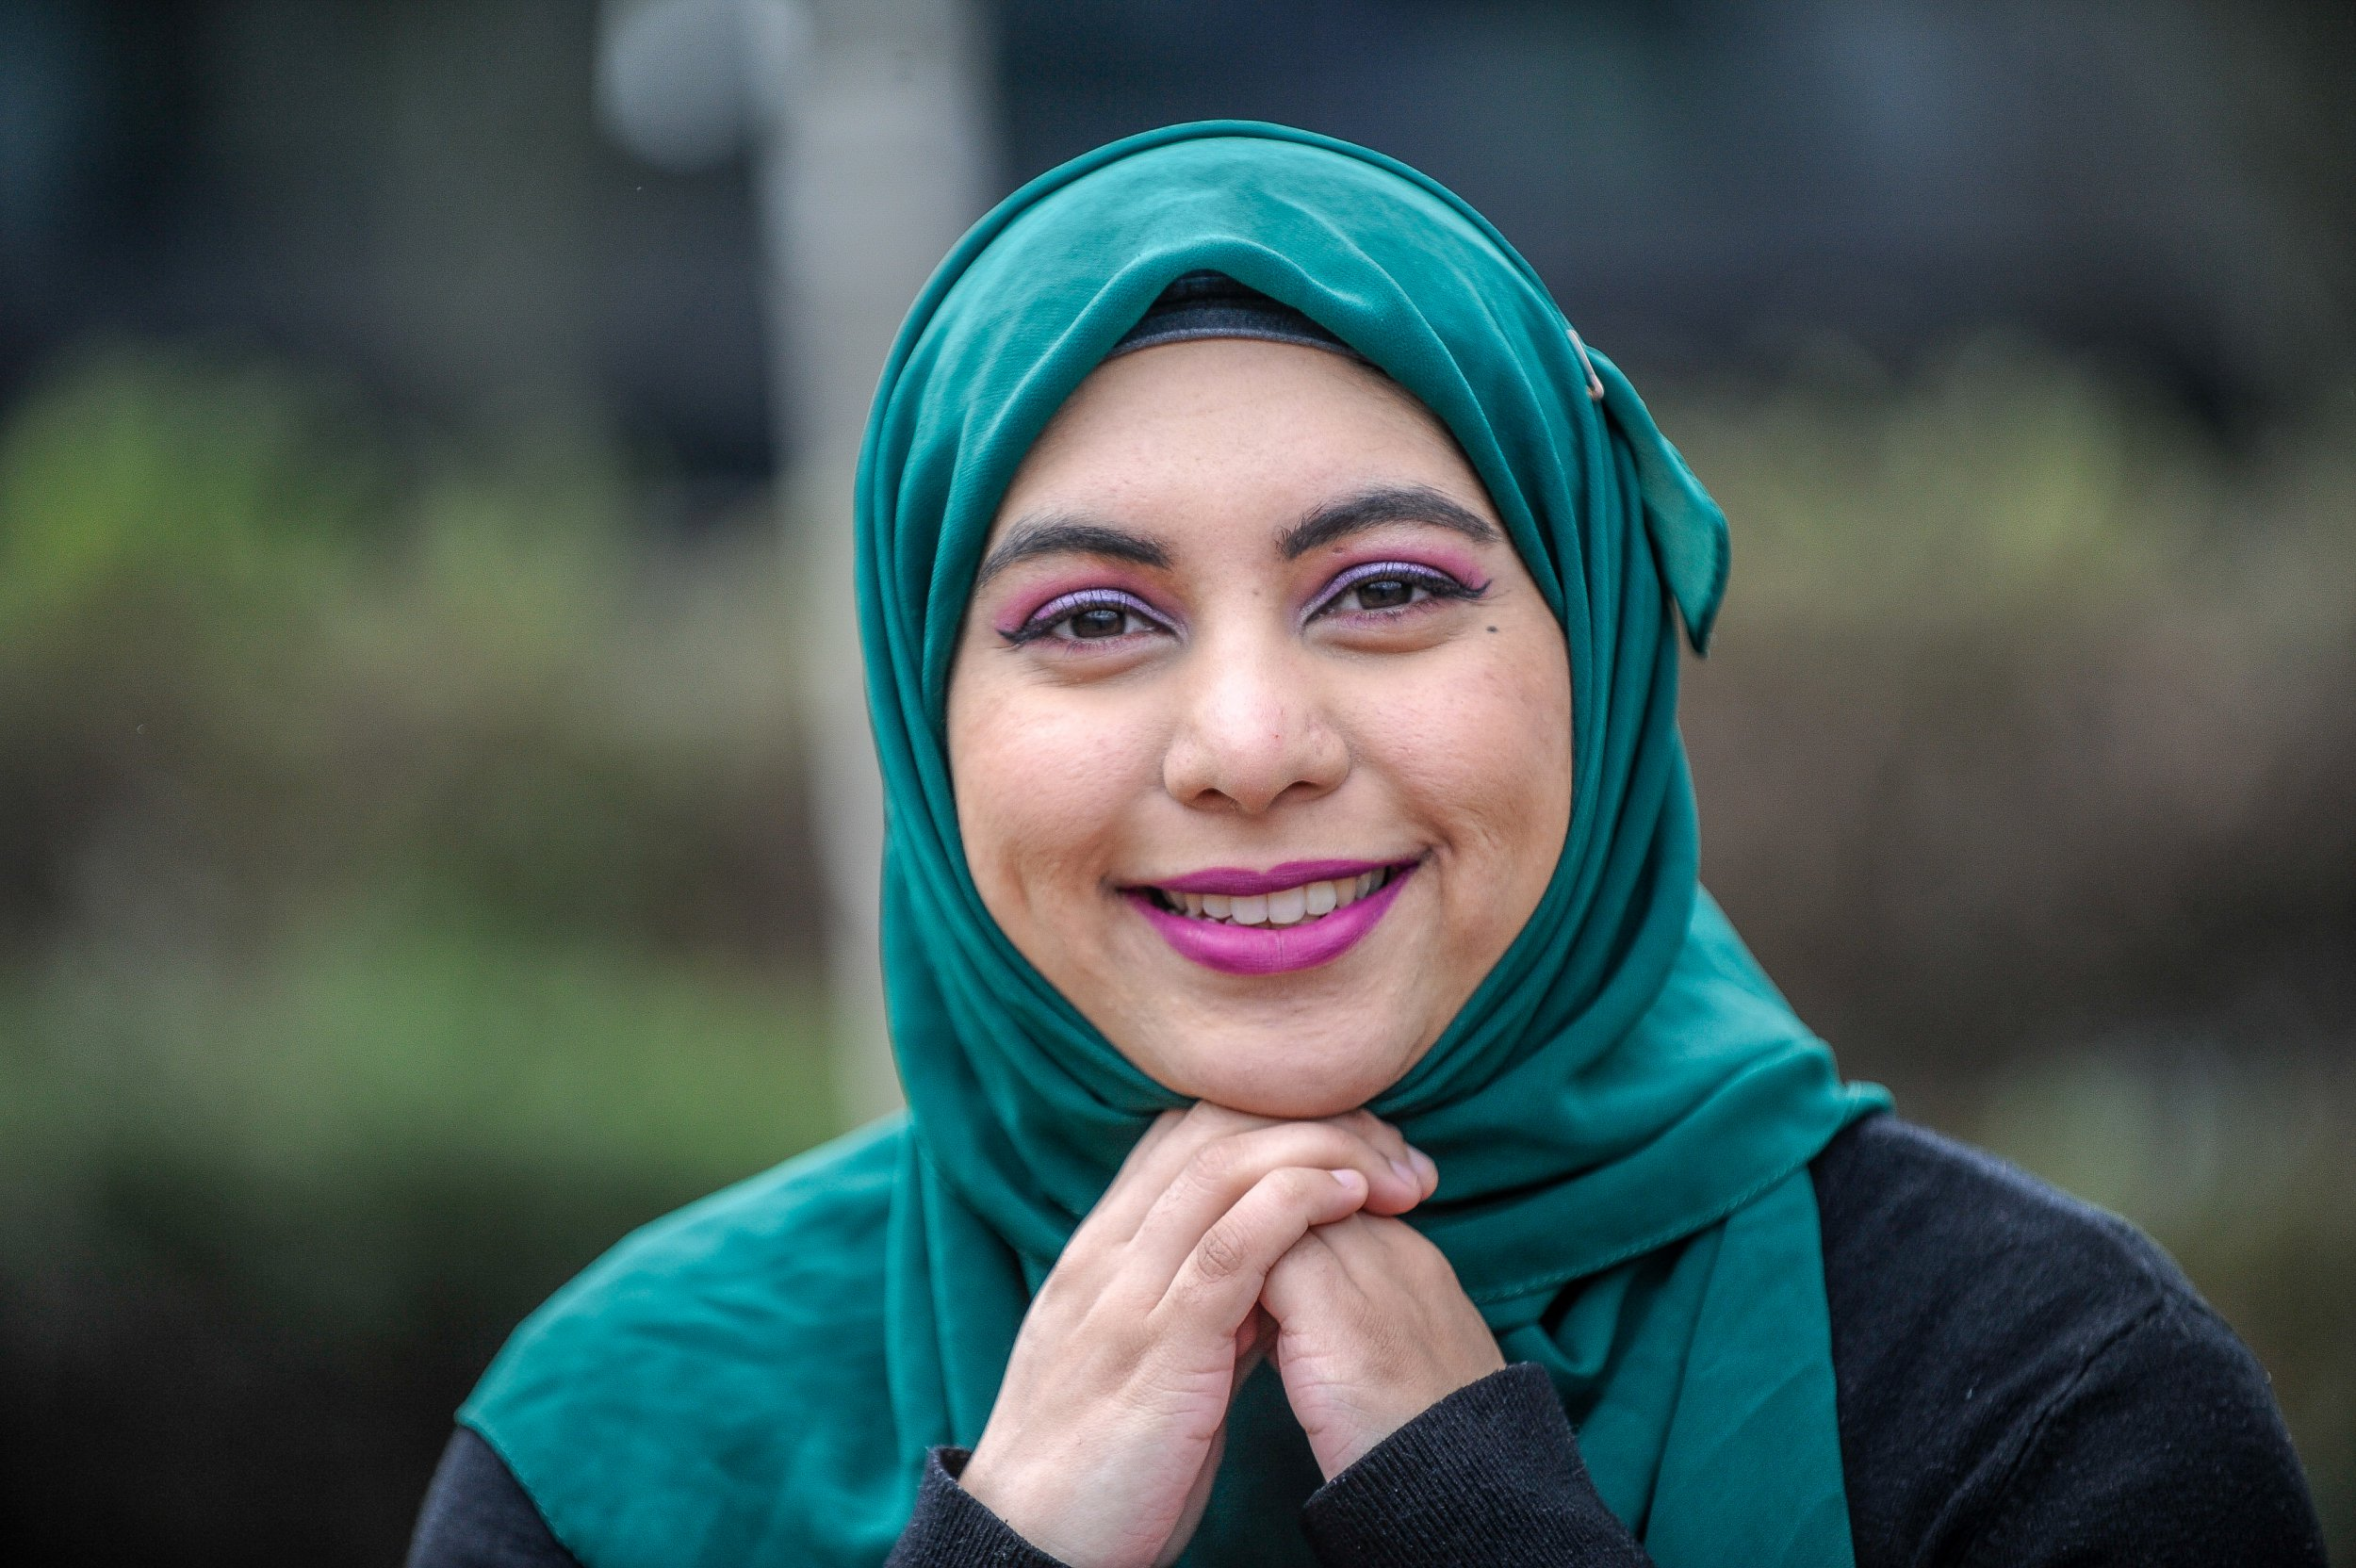 LGBT Role Models: 'It's difficult to be seen as queer when you wear a hijab'